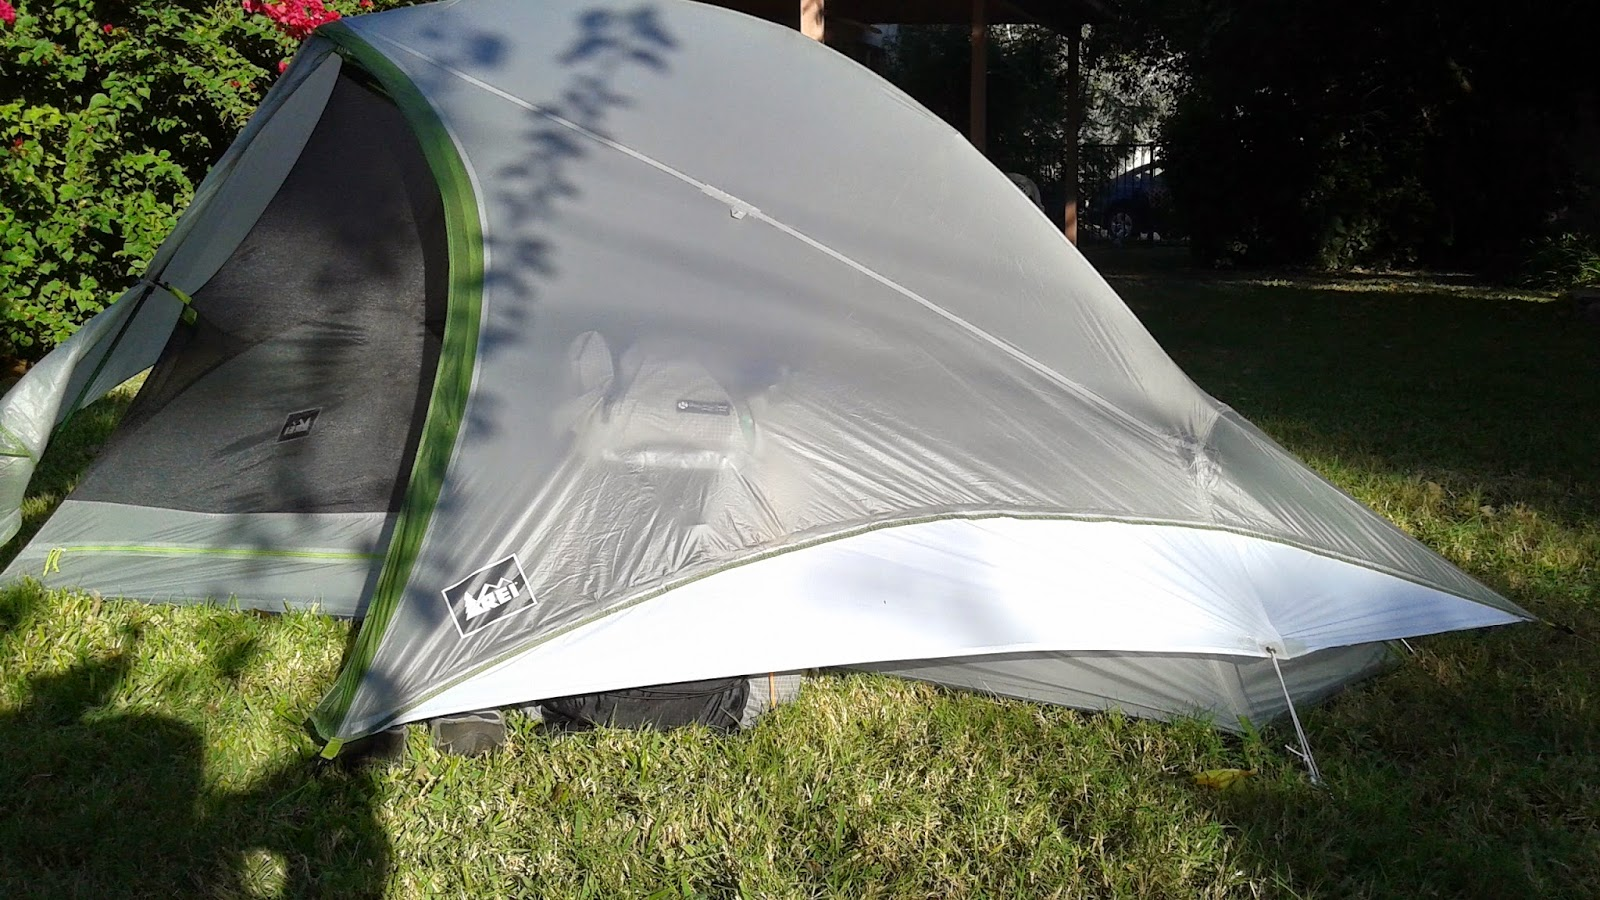 REI Dash 2 Tent Modification (in white ripstop) w/ pack underneath. After this shot I realized the tension on the foot-end side (Right side in pic) was not ... & Packman - Raised by Raccoons: REI DASH 2 TENT REVIEW u0026 MODIFICATION